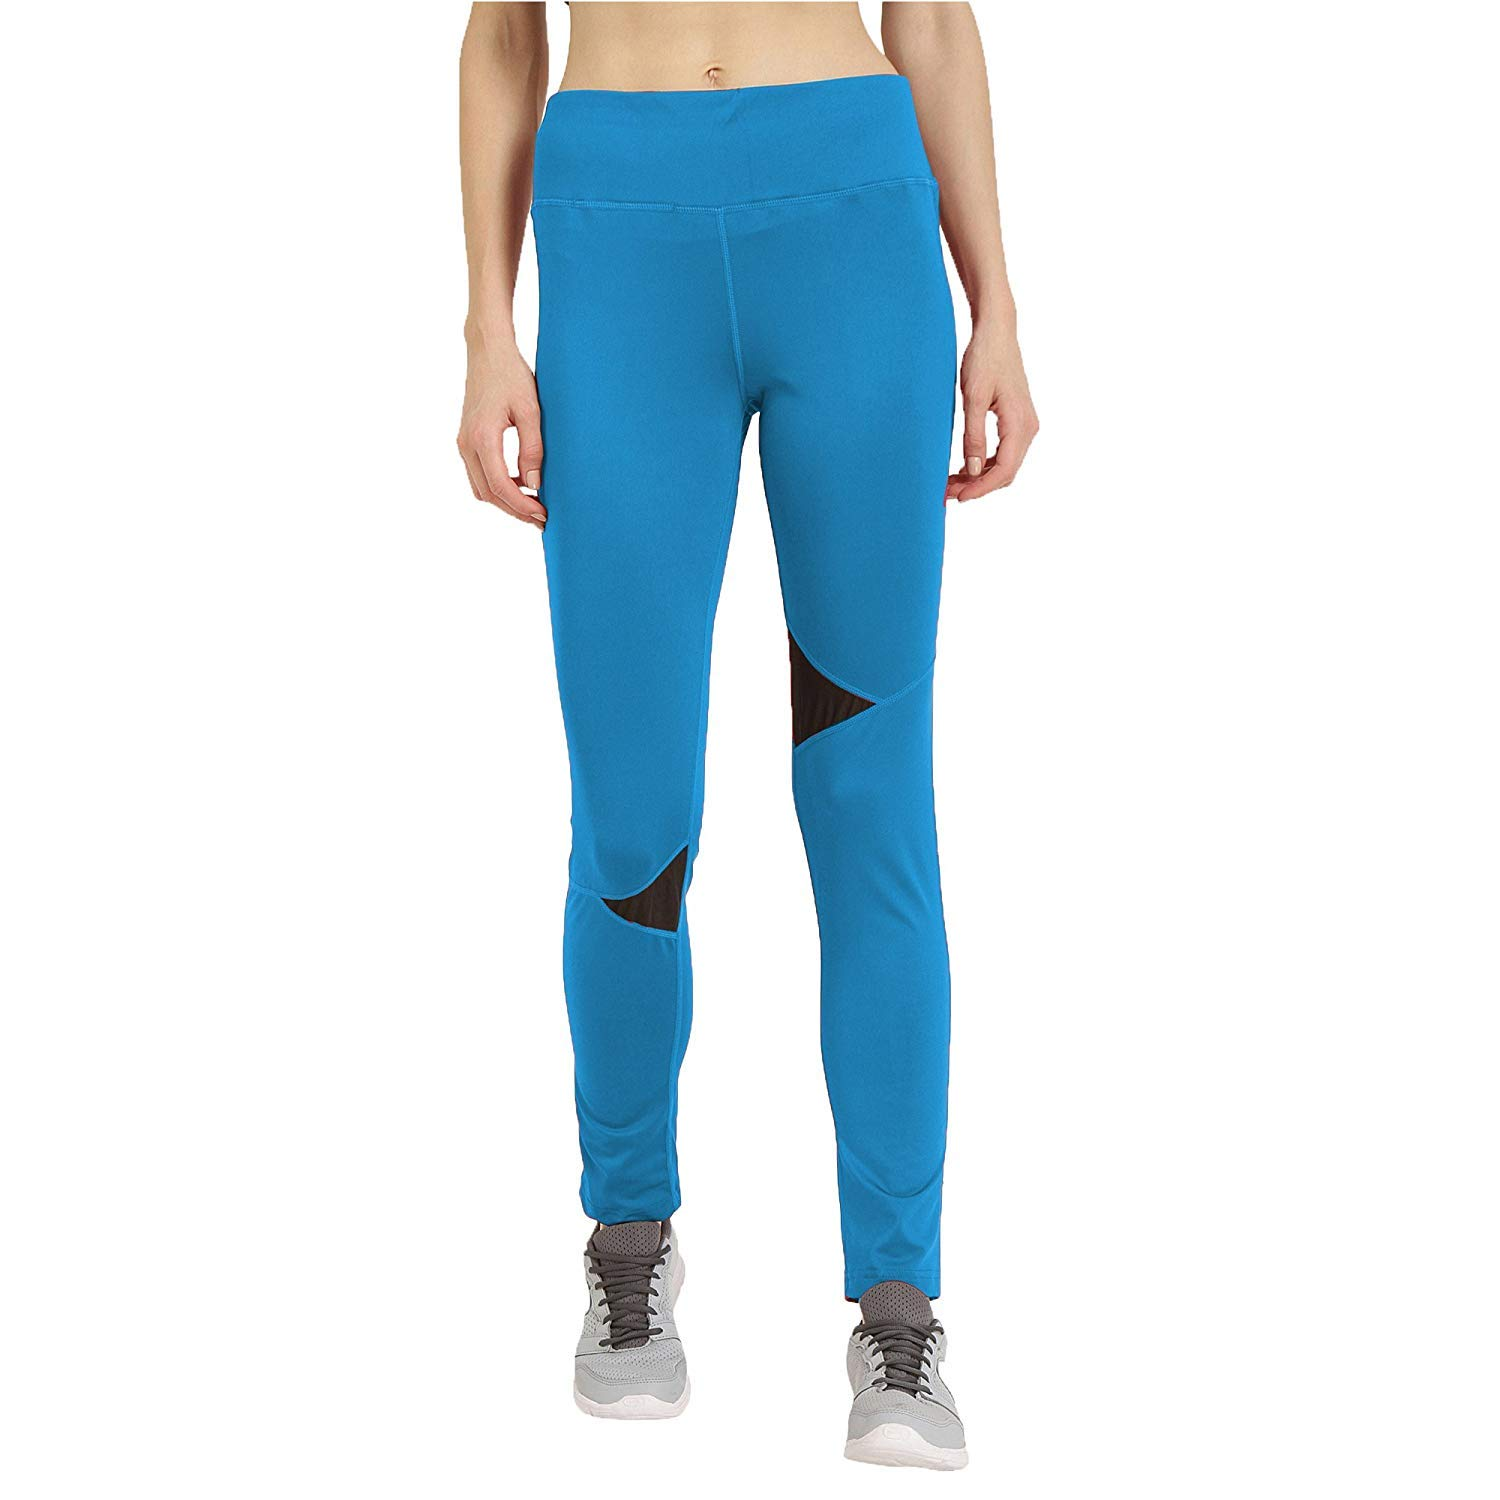 Amazon price history for CHKOKKO Solid Yoga Sports Stretchable High Waist Track Yoga Pant for Womens